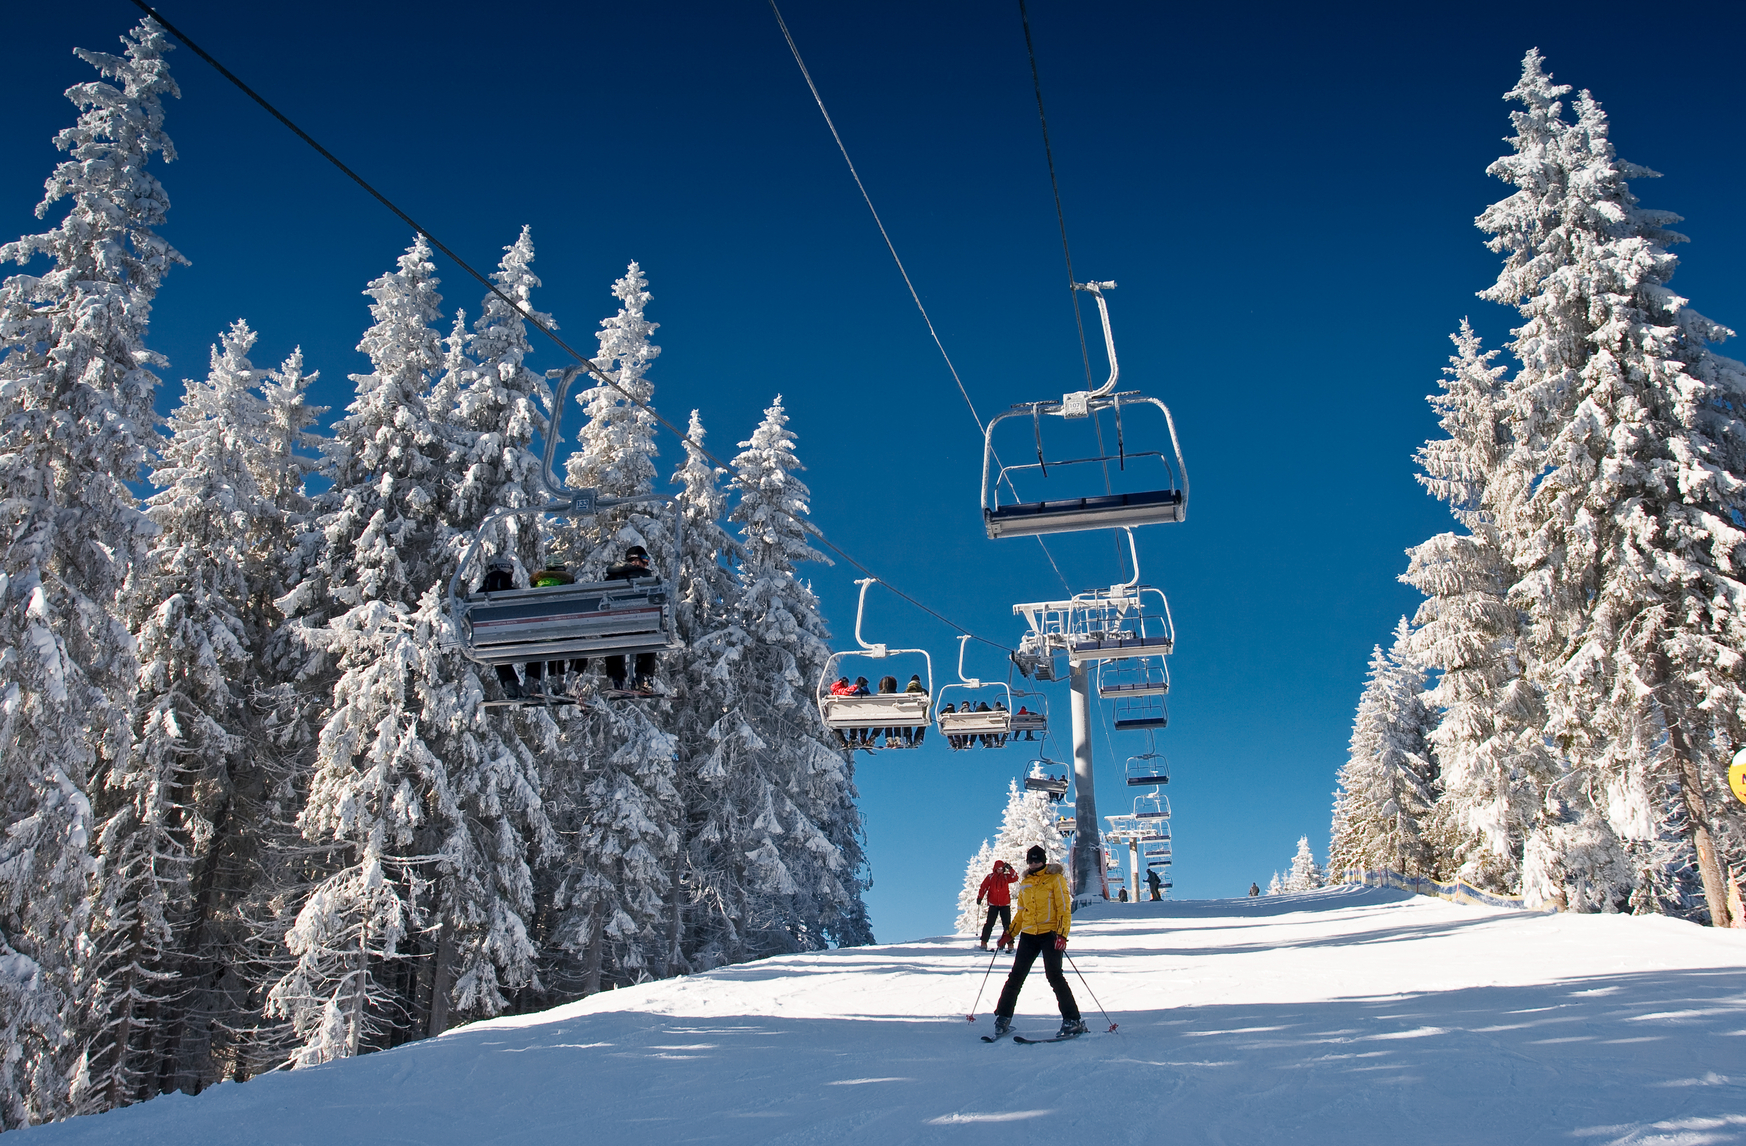 Skiing resort